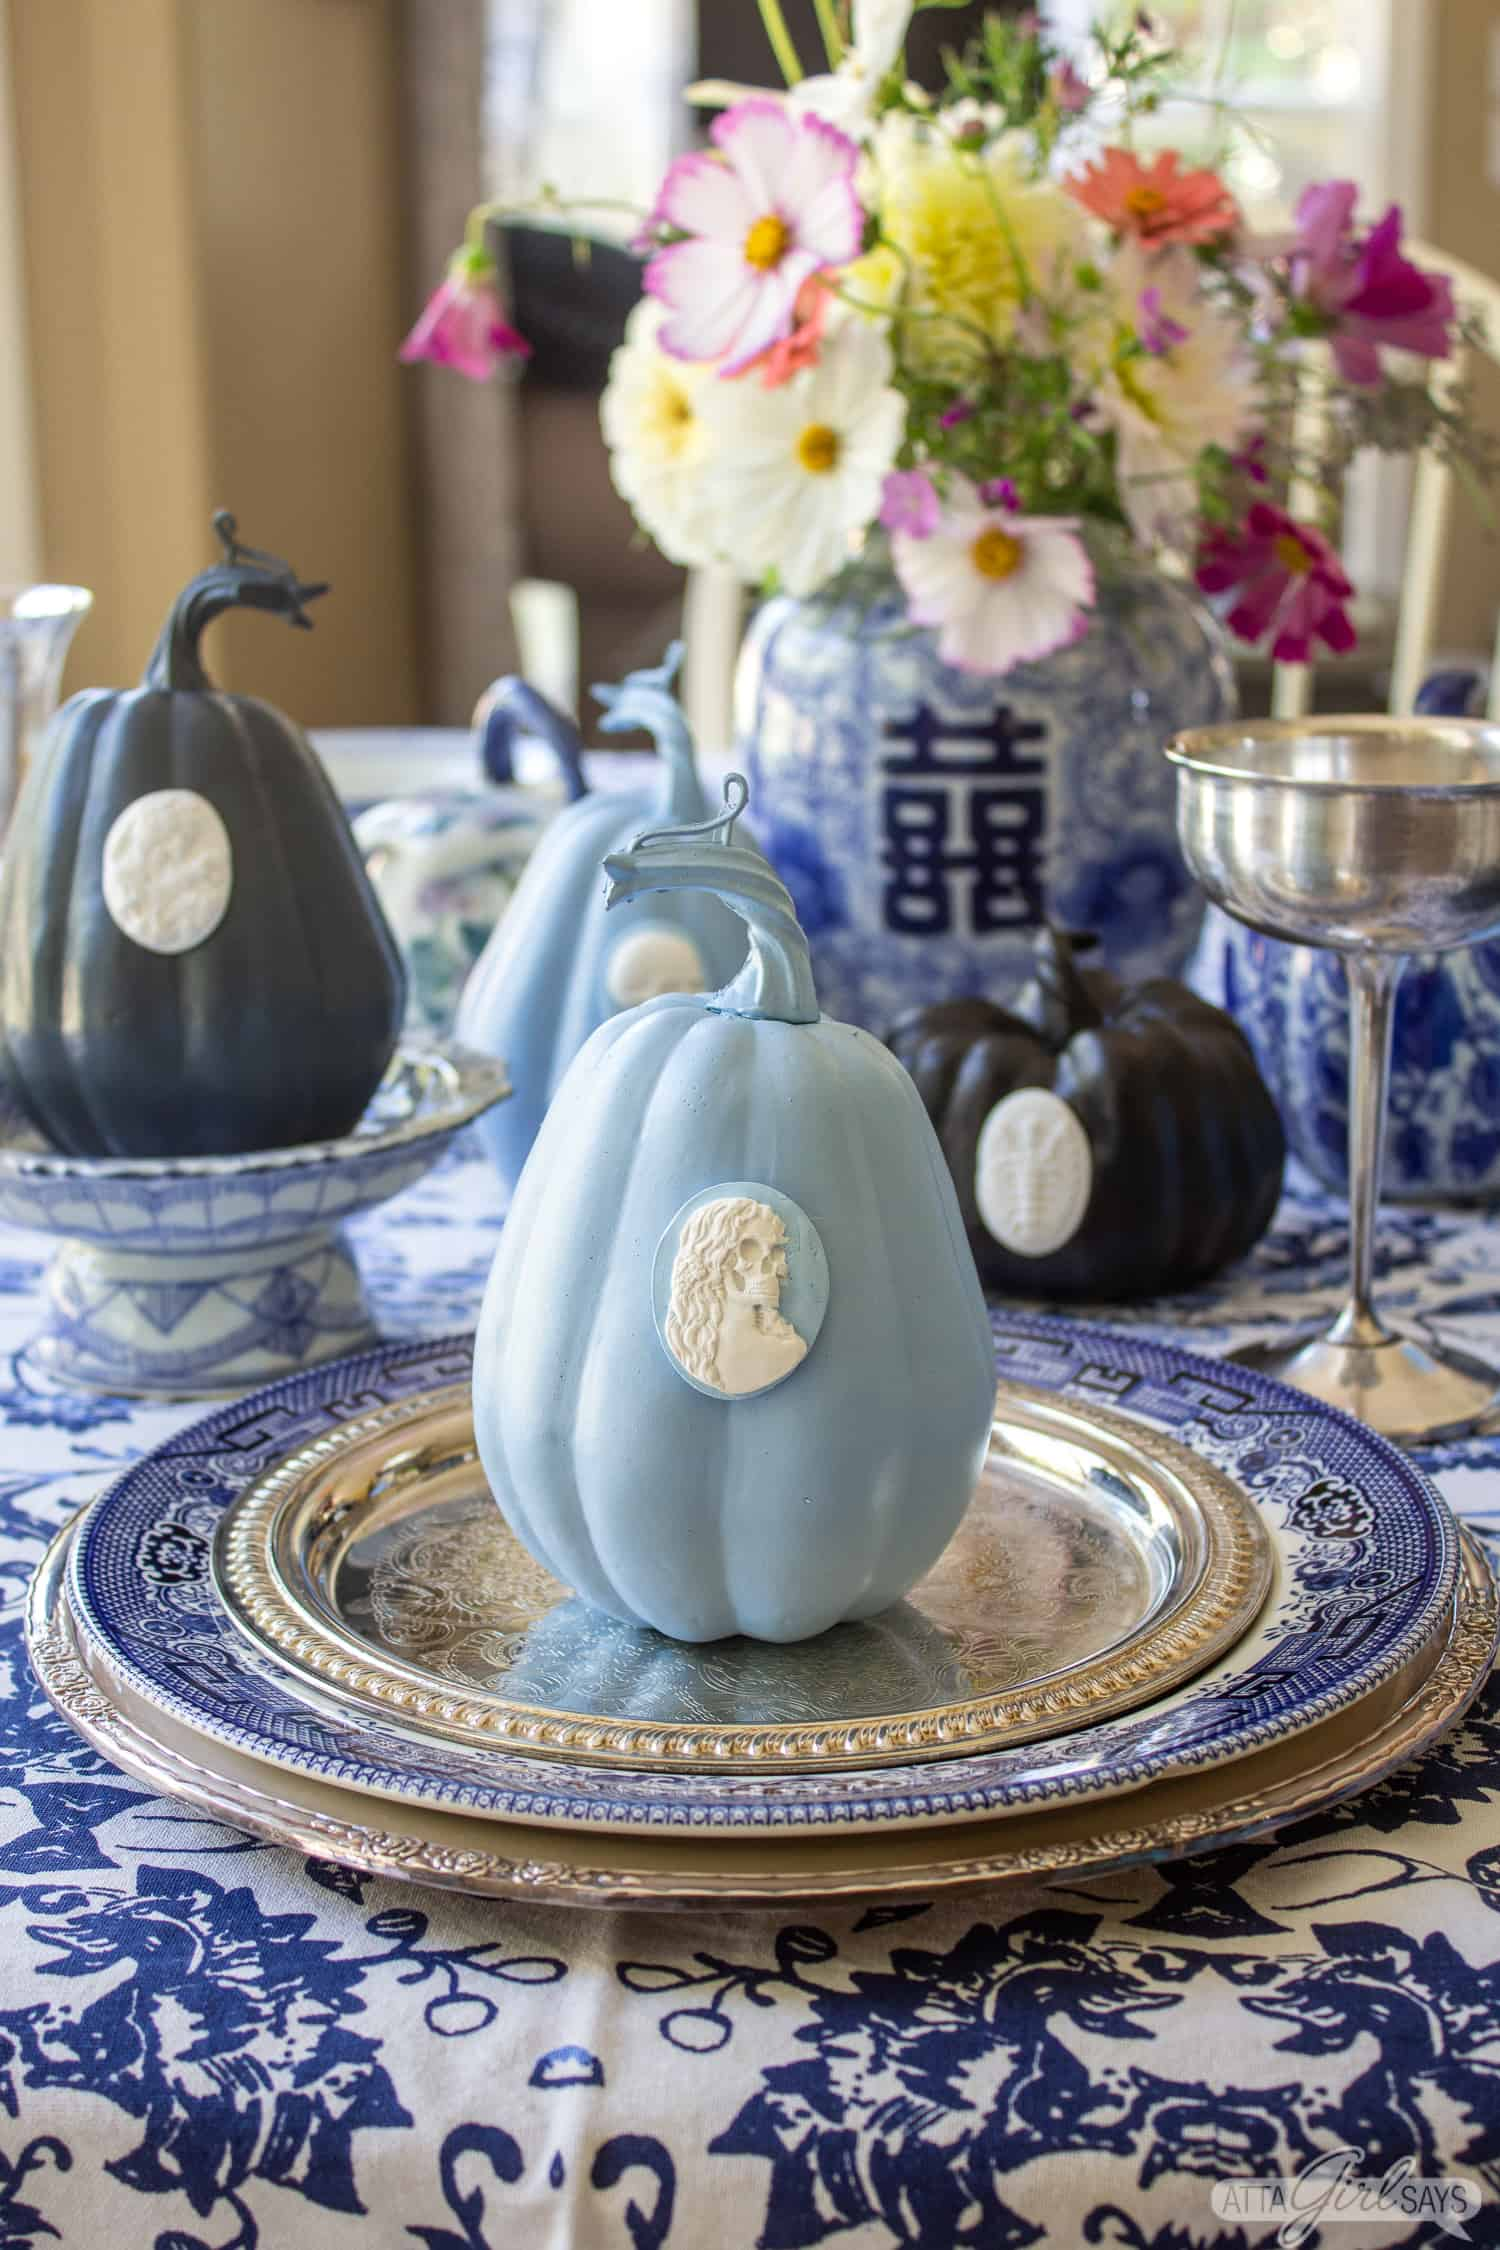 blue and white intaglio pumpkin in the style of Wedgwood jasperware in a formal tablesetting